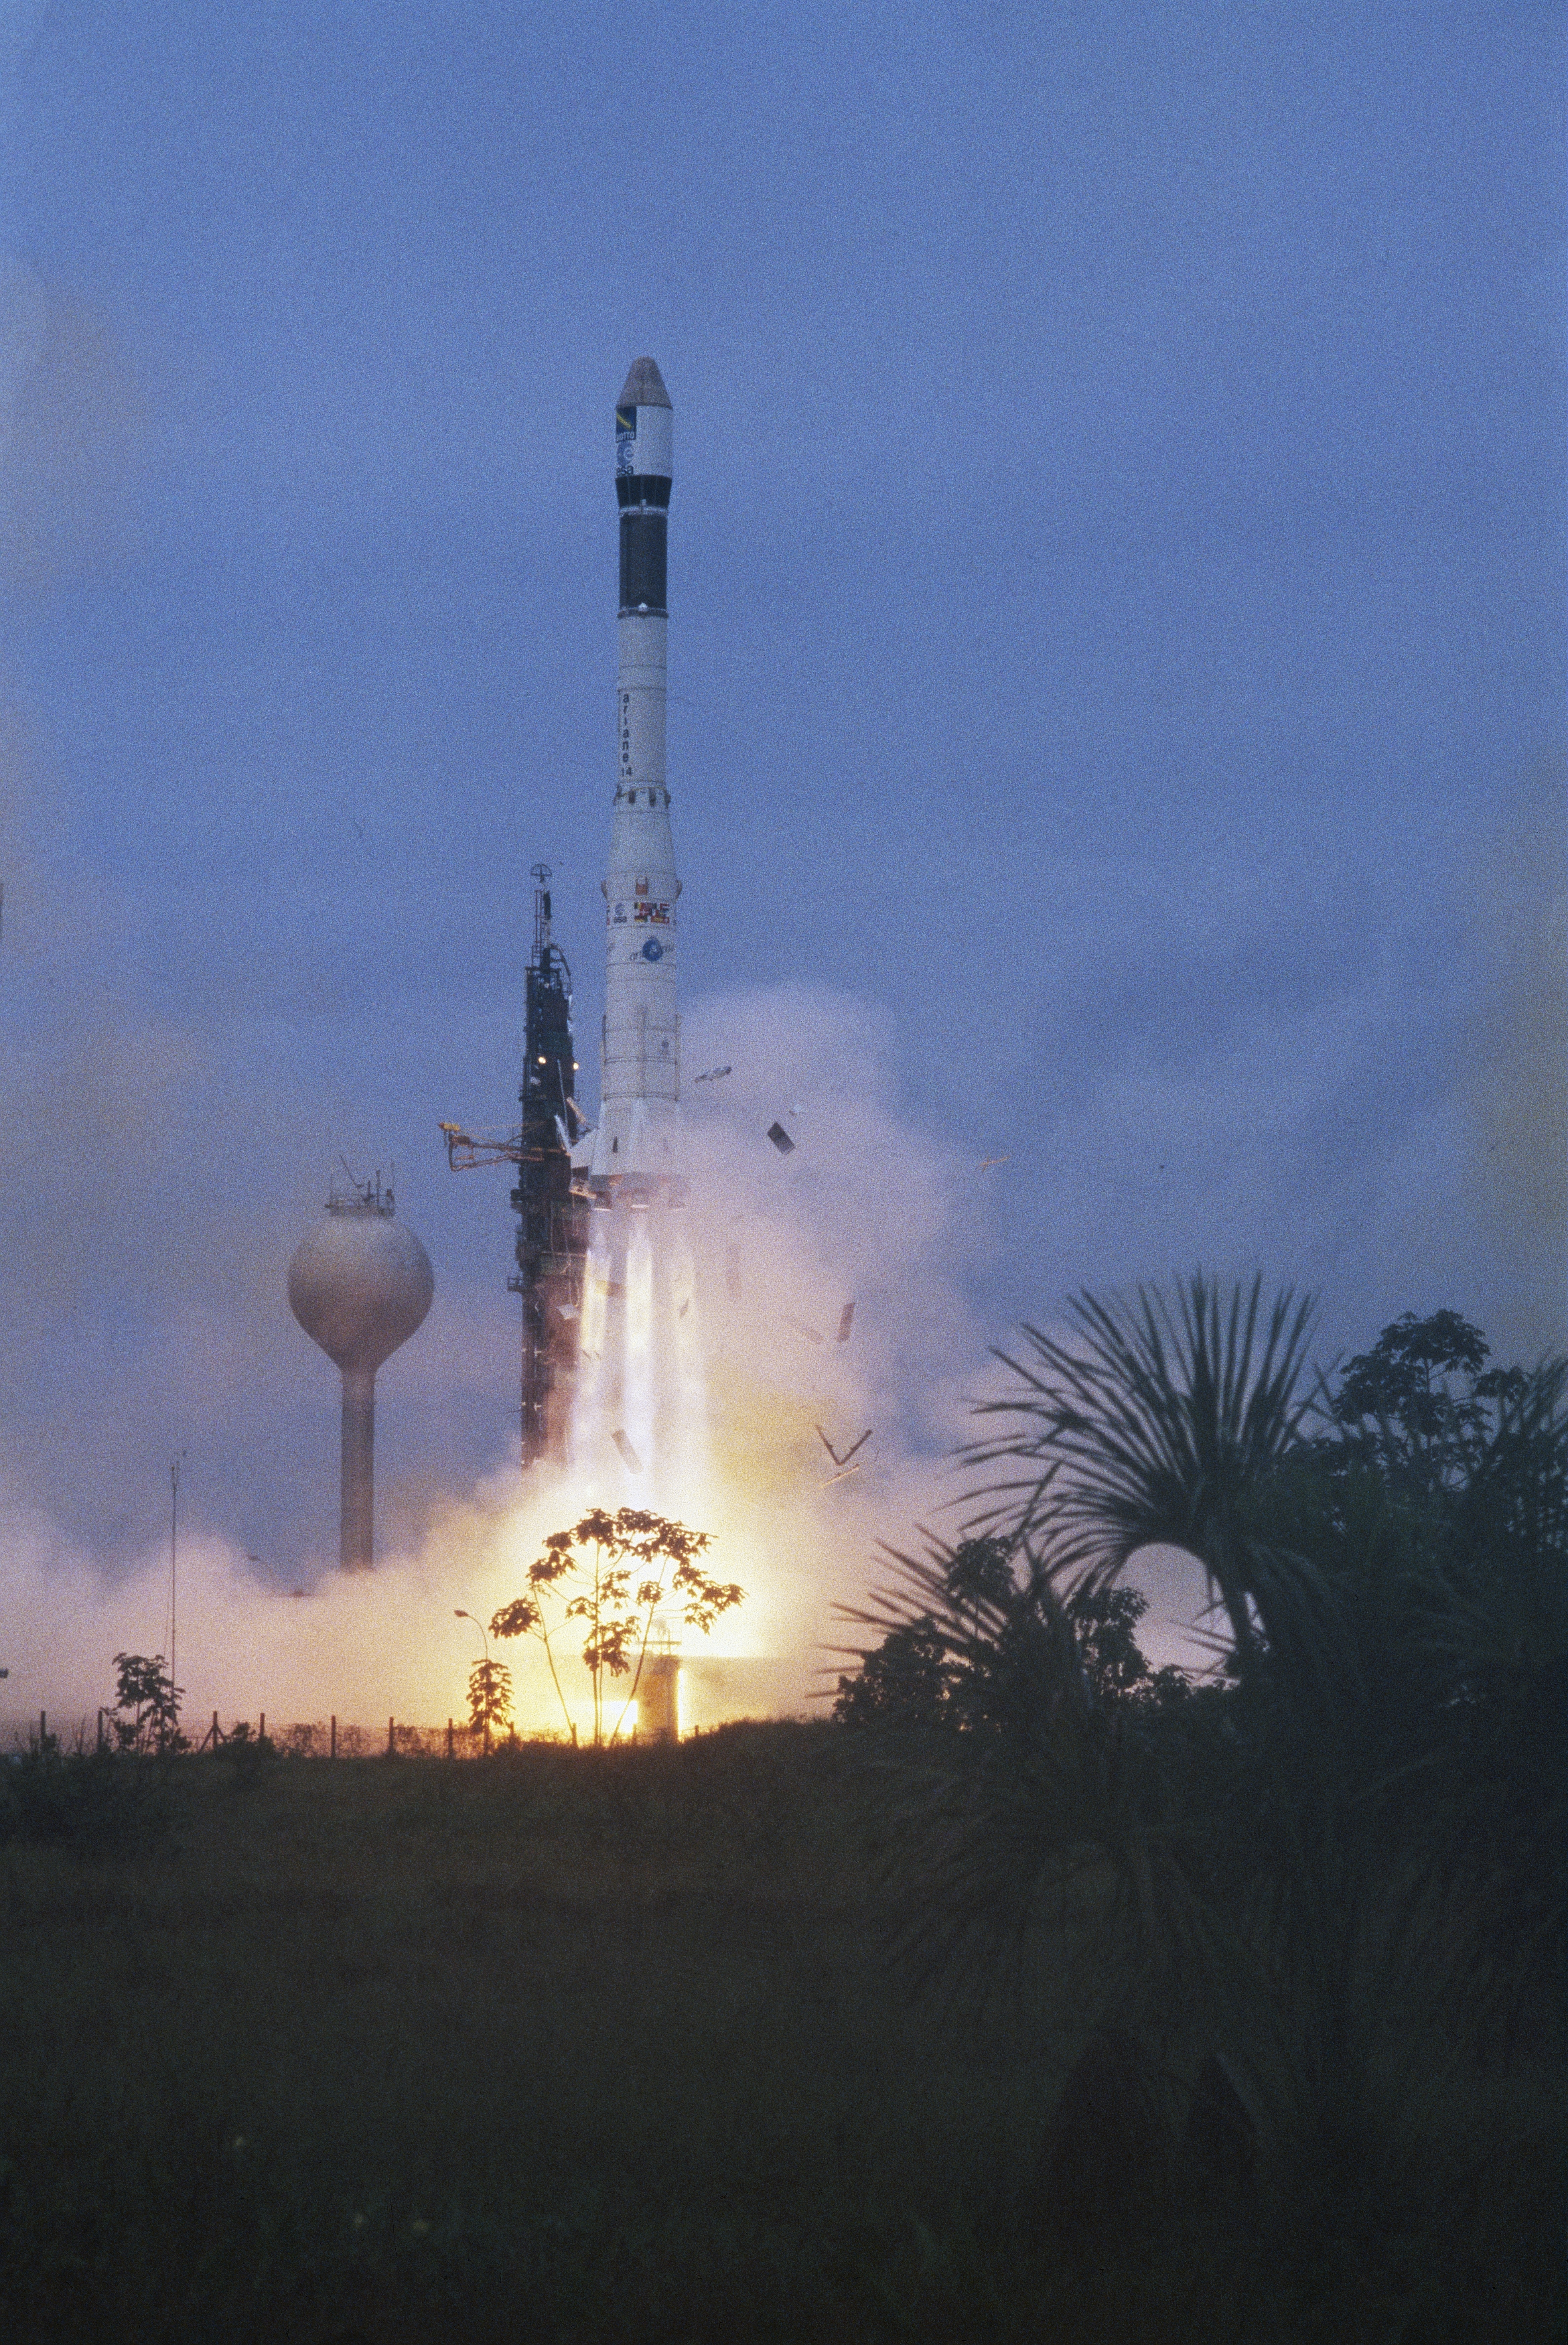 Giotto Spacecraft Rocket 1985 - Pics about space